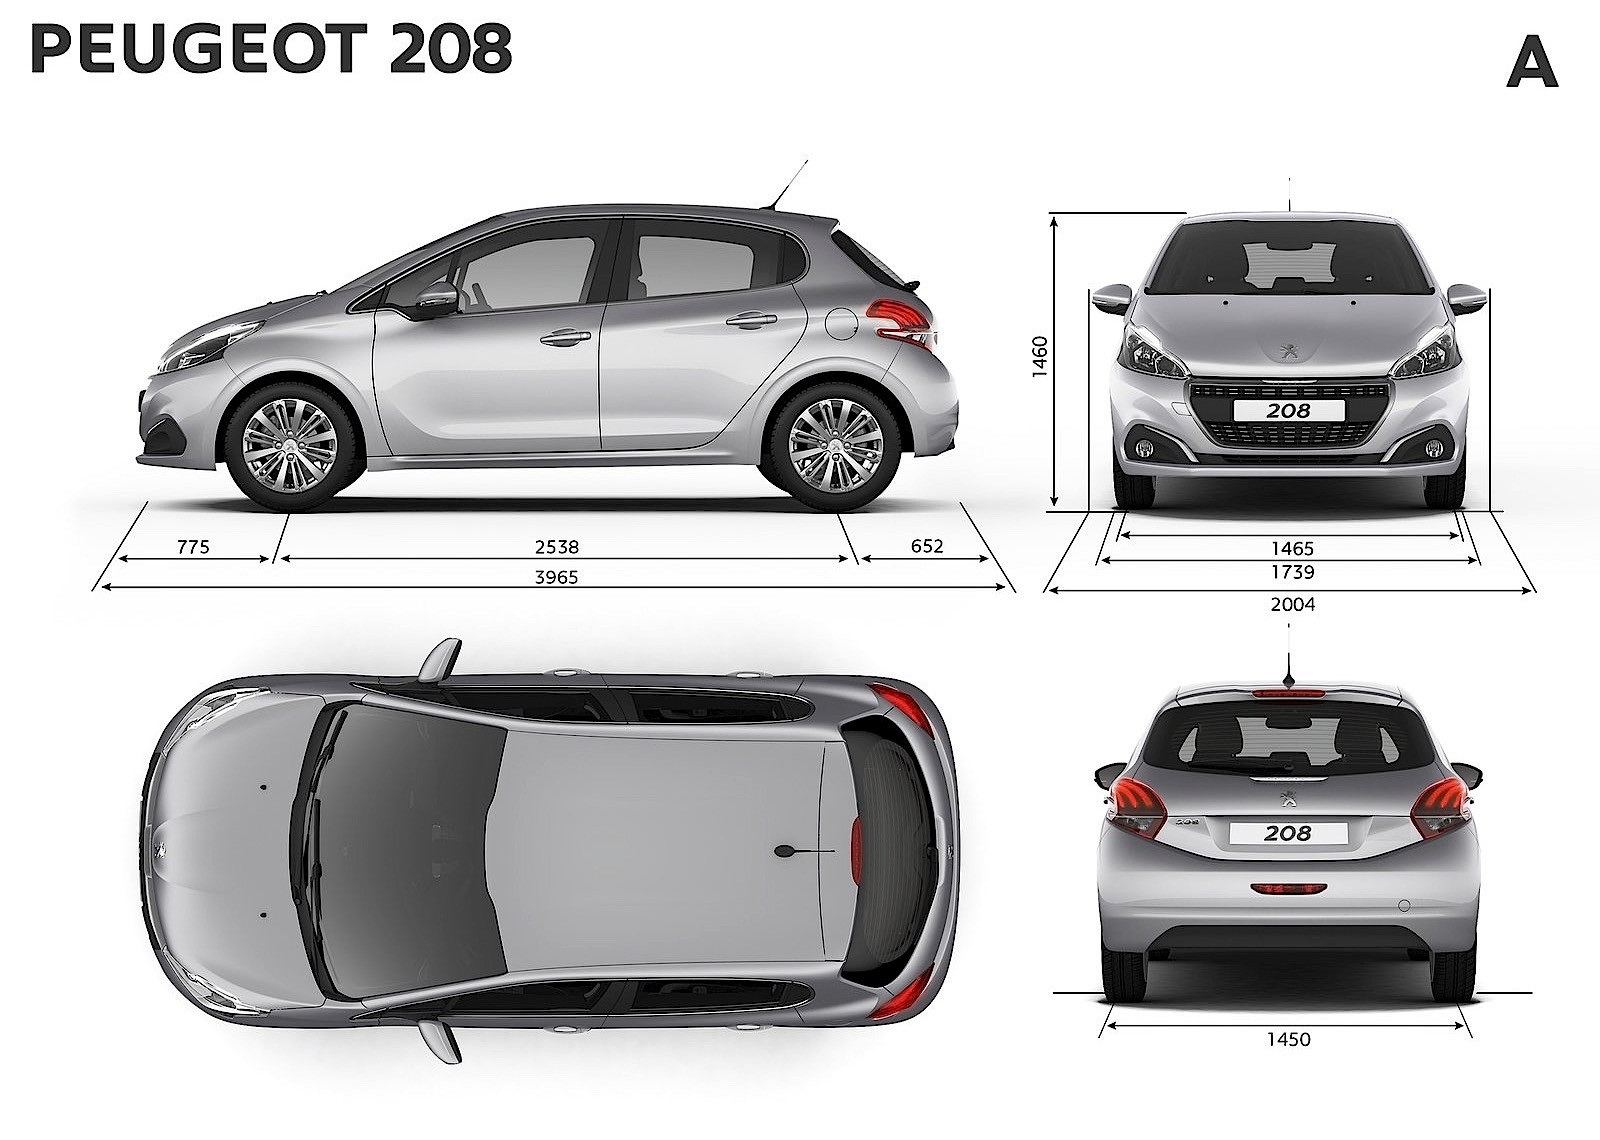 peugeot 208 5 doors specs 2015 2016 2017 2018. Black Bedroom Furniture Sets. Home Design Ideas